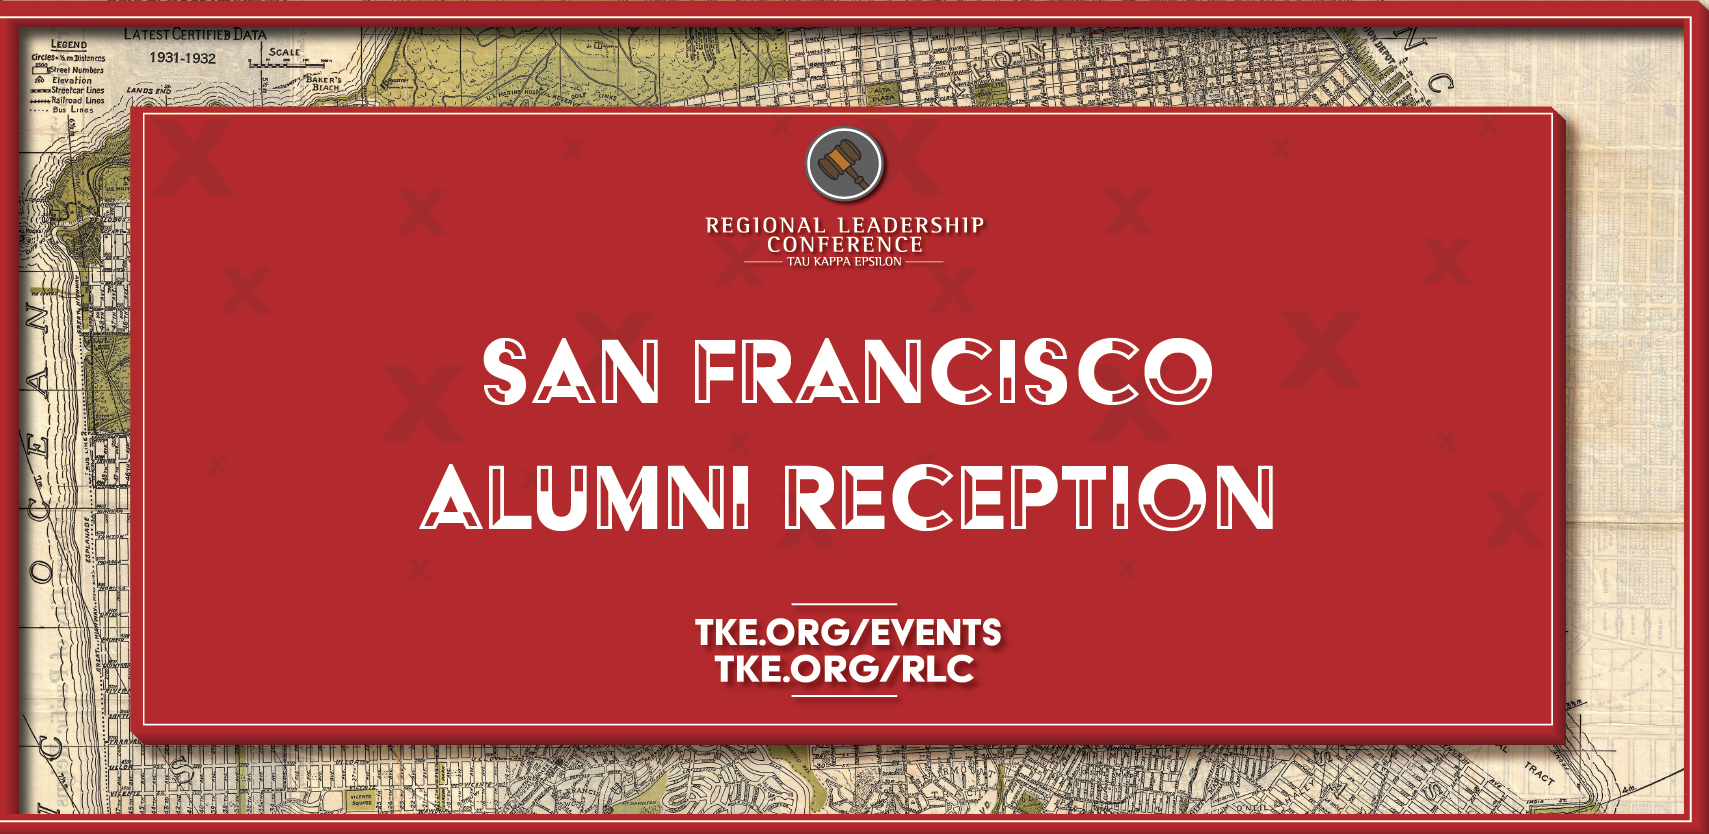 San Francisco Alumni Reception